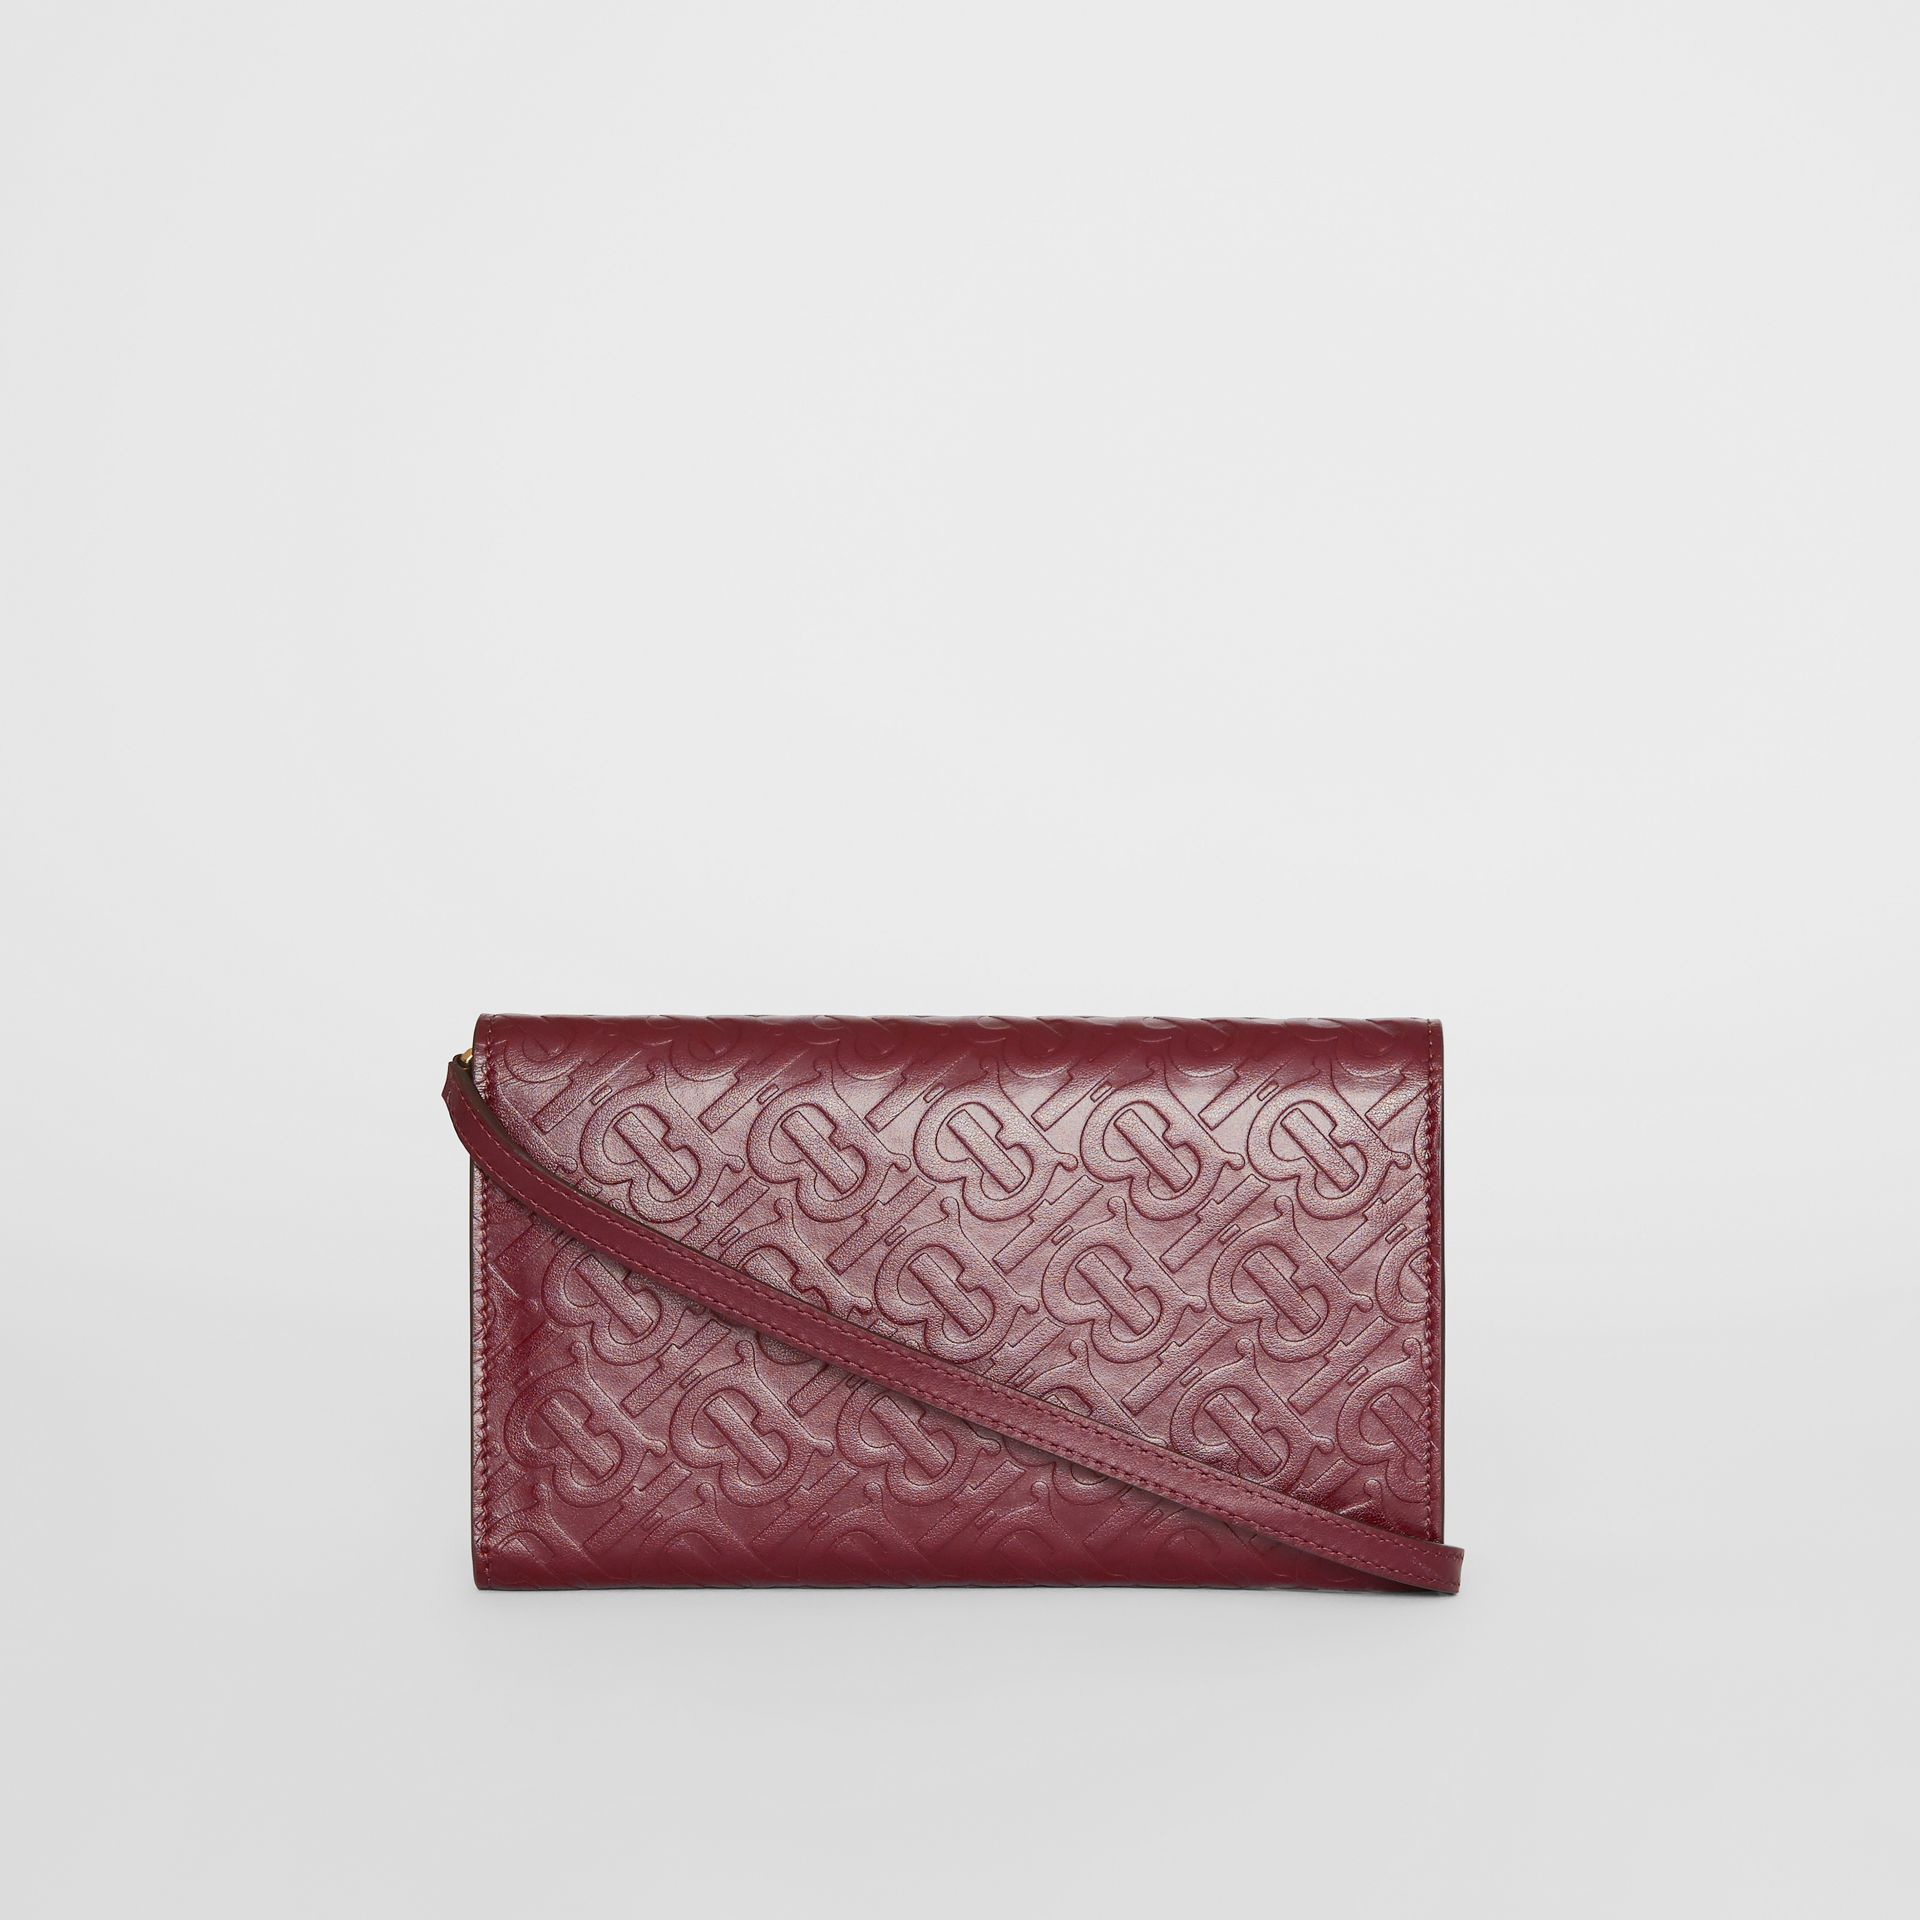 Portefeuille en cuir Monogram avec sangle amovible (Oxblood) - Femme | Burberry - photo de la galerie 7